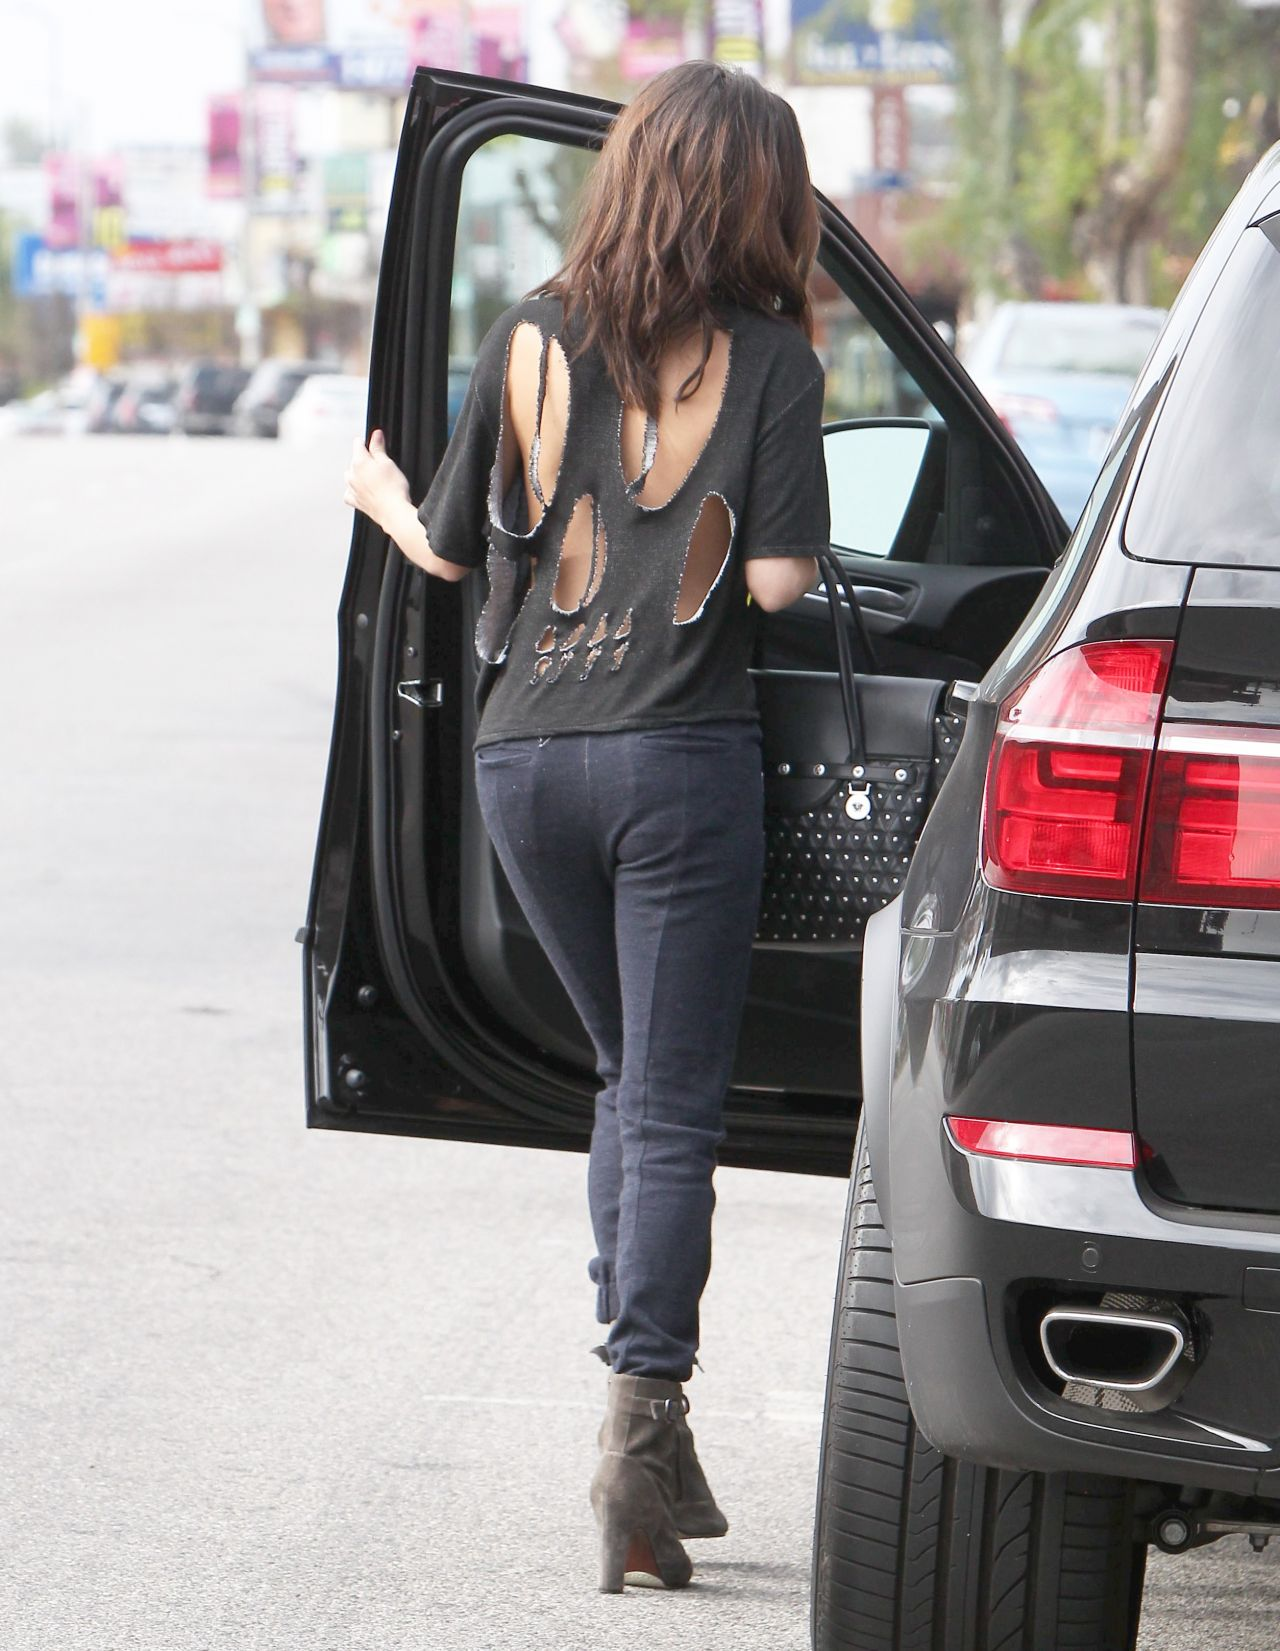 Selena Gomez Street Style - in a Shredded Shirt - January 2014